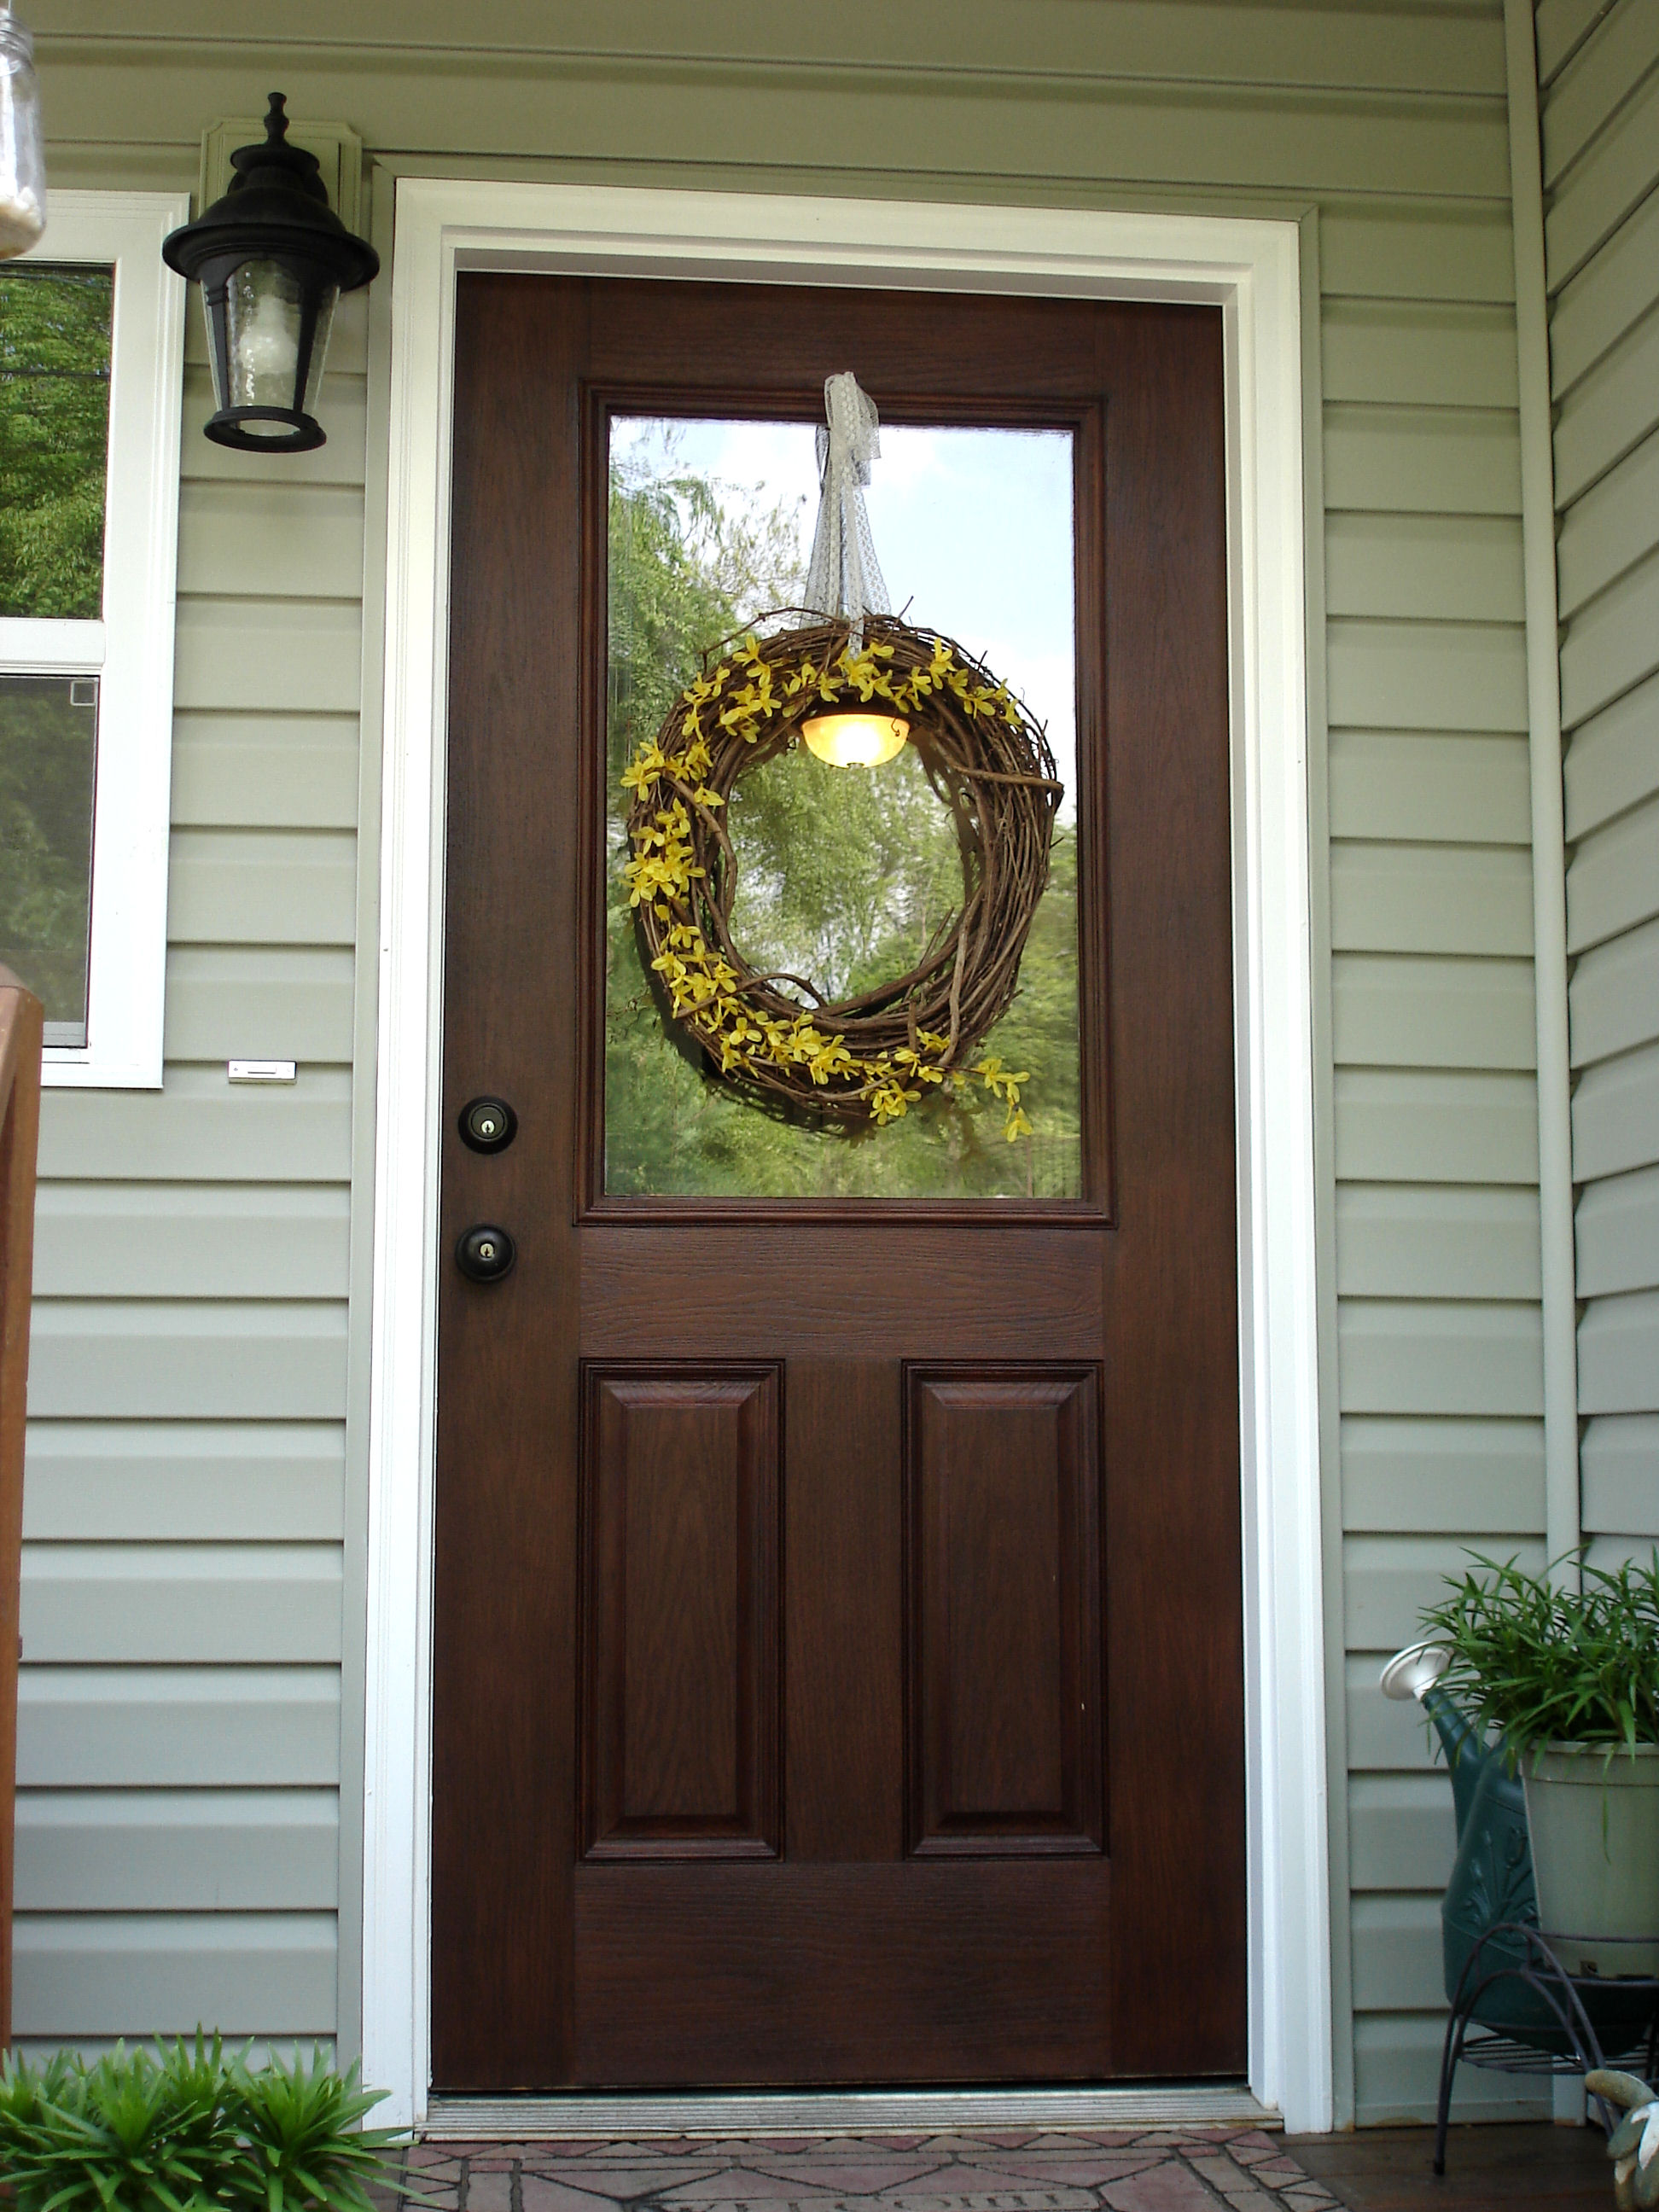 chic wooden door using minwax gel stain plus wreath and white trim board door matched with gray horizontal siding for home exterior design ideas